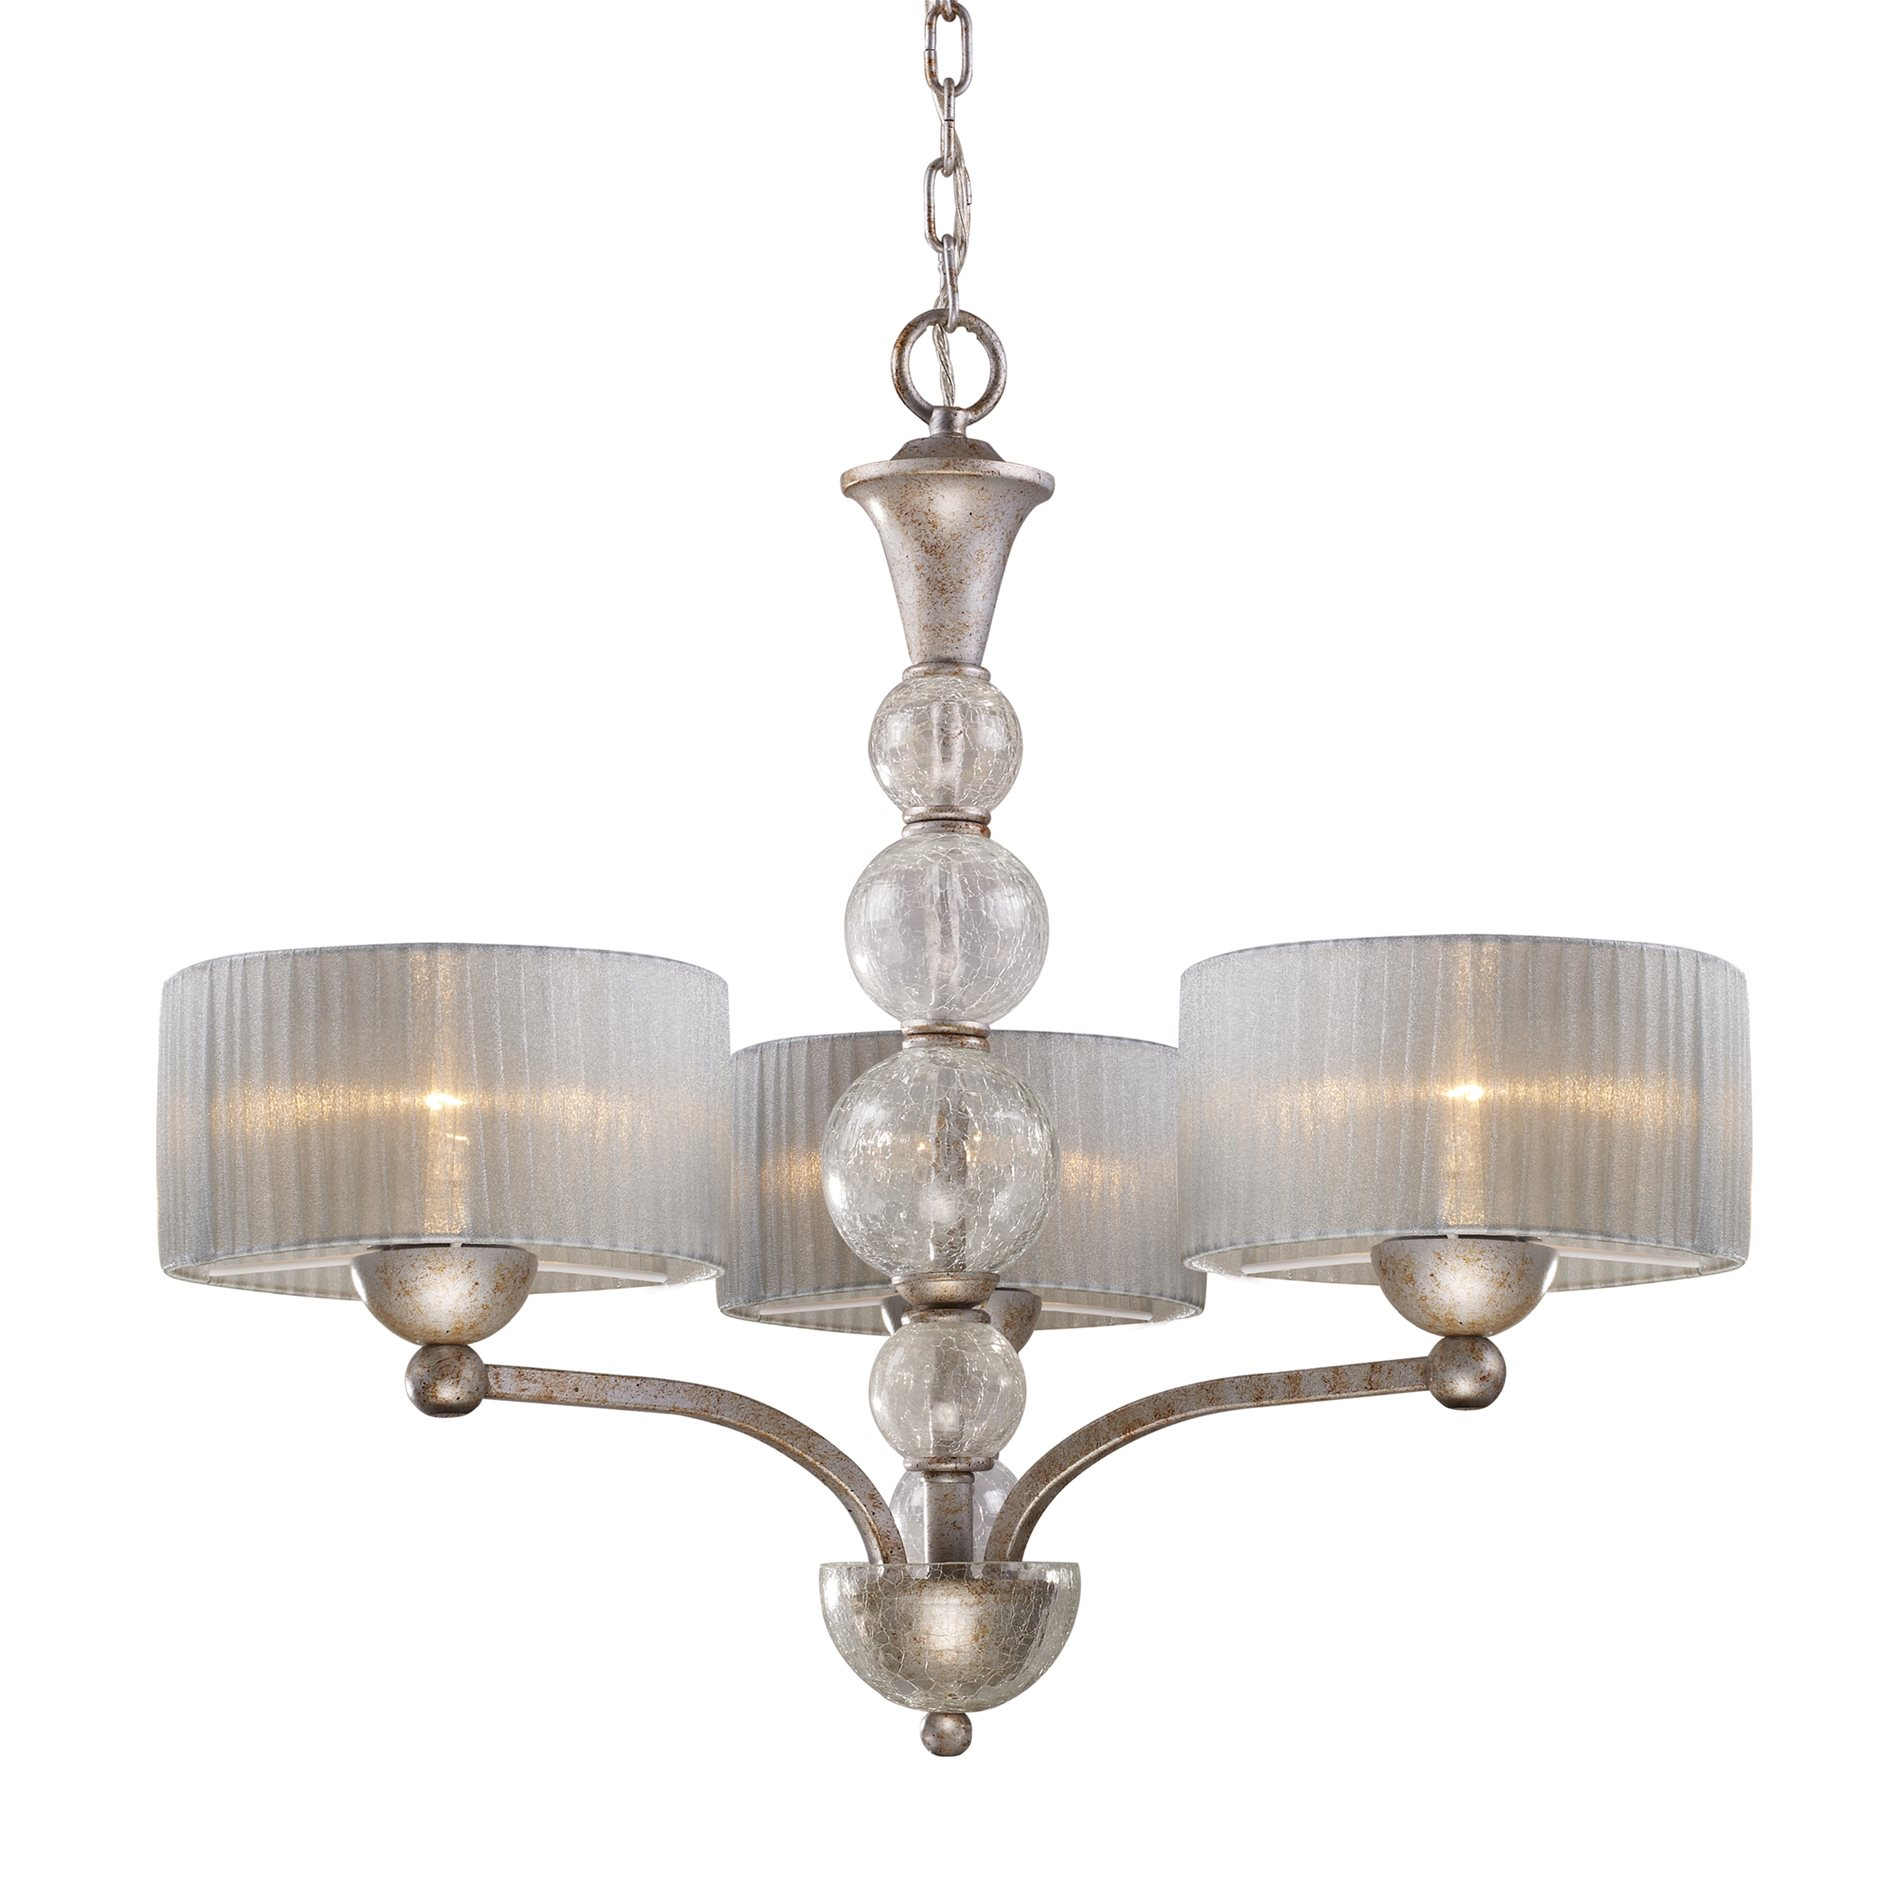 Elk Lighting Fans: Elk Lighting 20008/3 Alexis Transitional Chandelier ELK